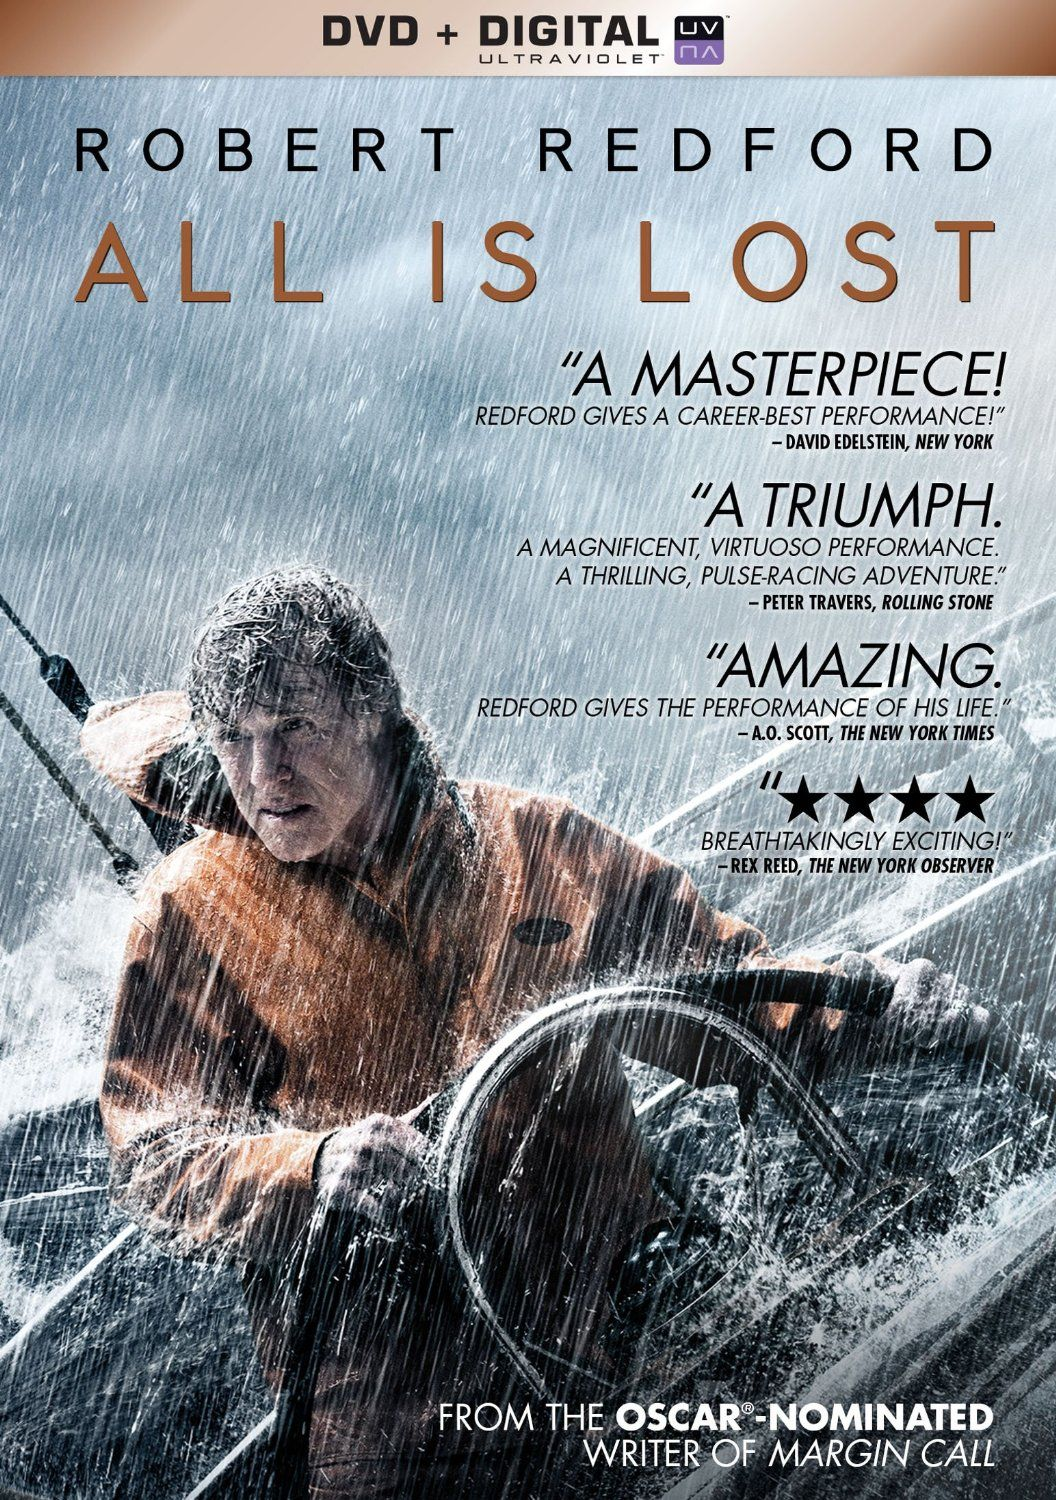 All Is Lost  Rated PG-13 | New DVDs at the Library | All is lost